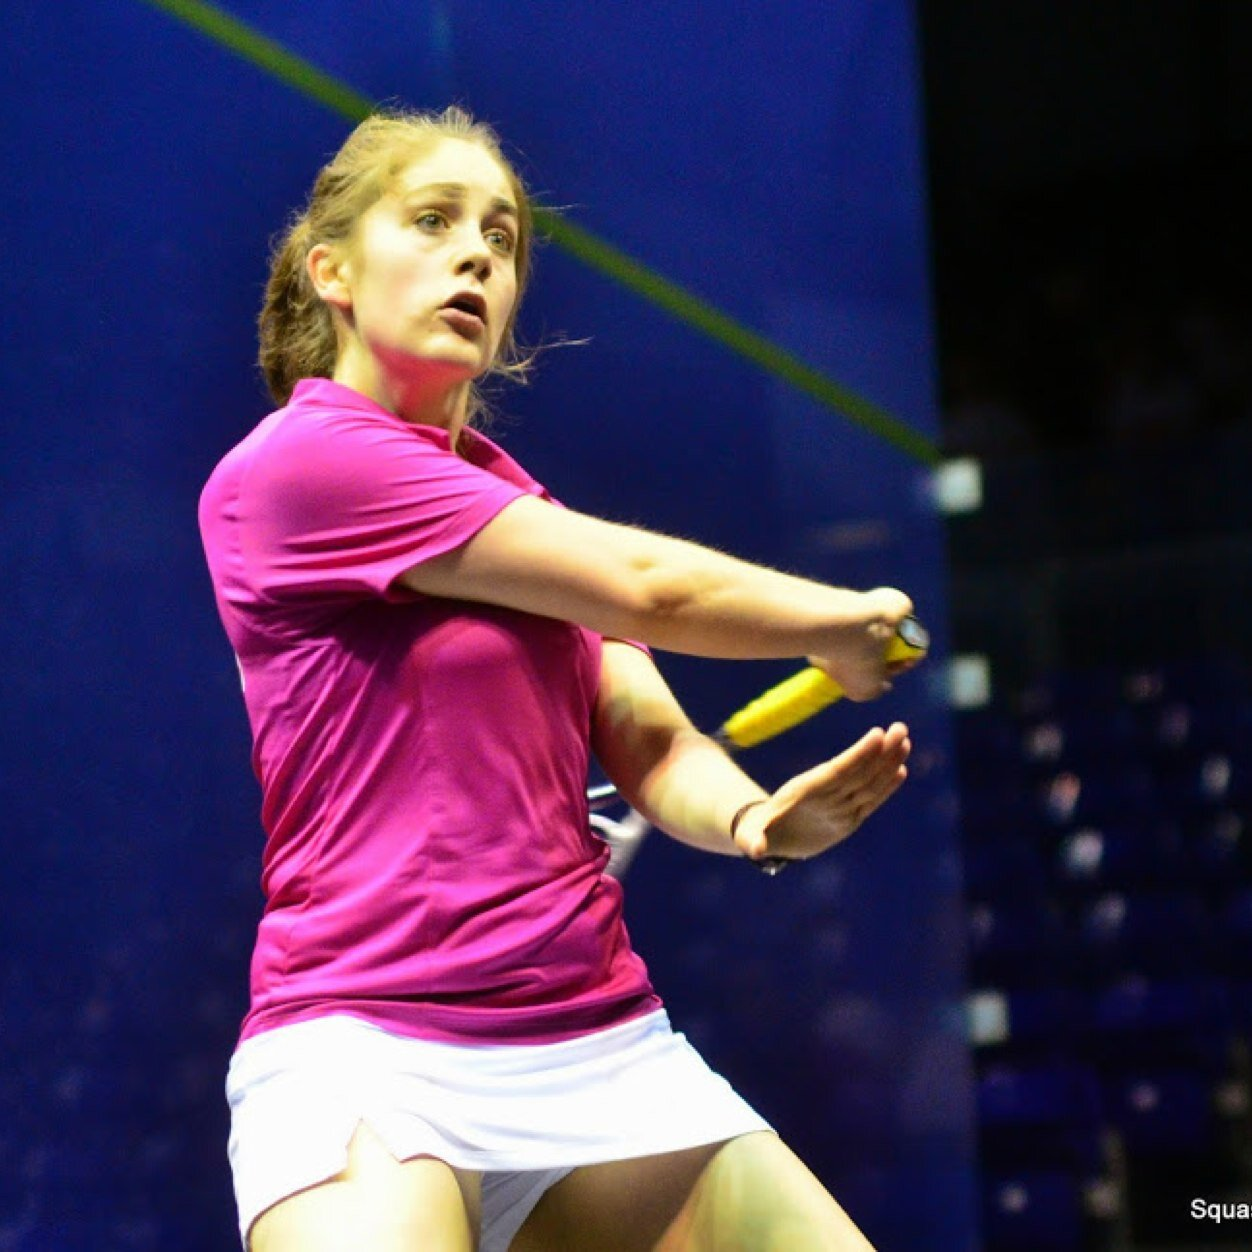 Evans regained her victory in the fourth round with 11-7 as well as the fifth one with 11-5.